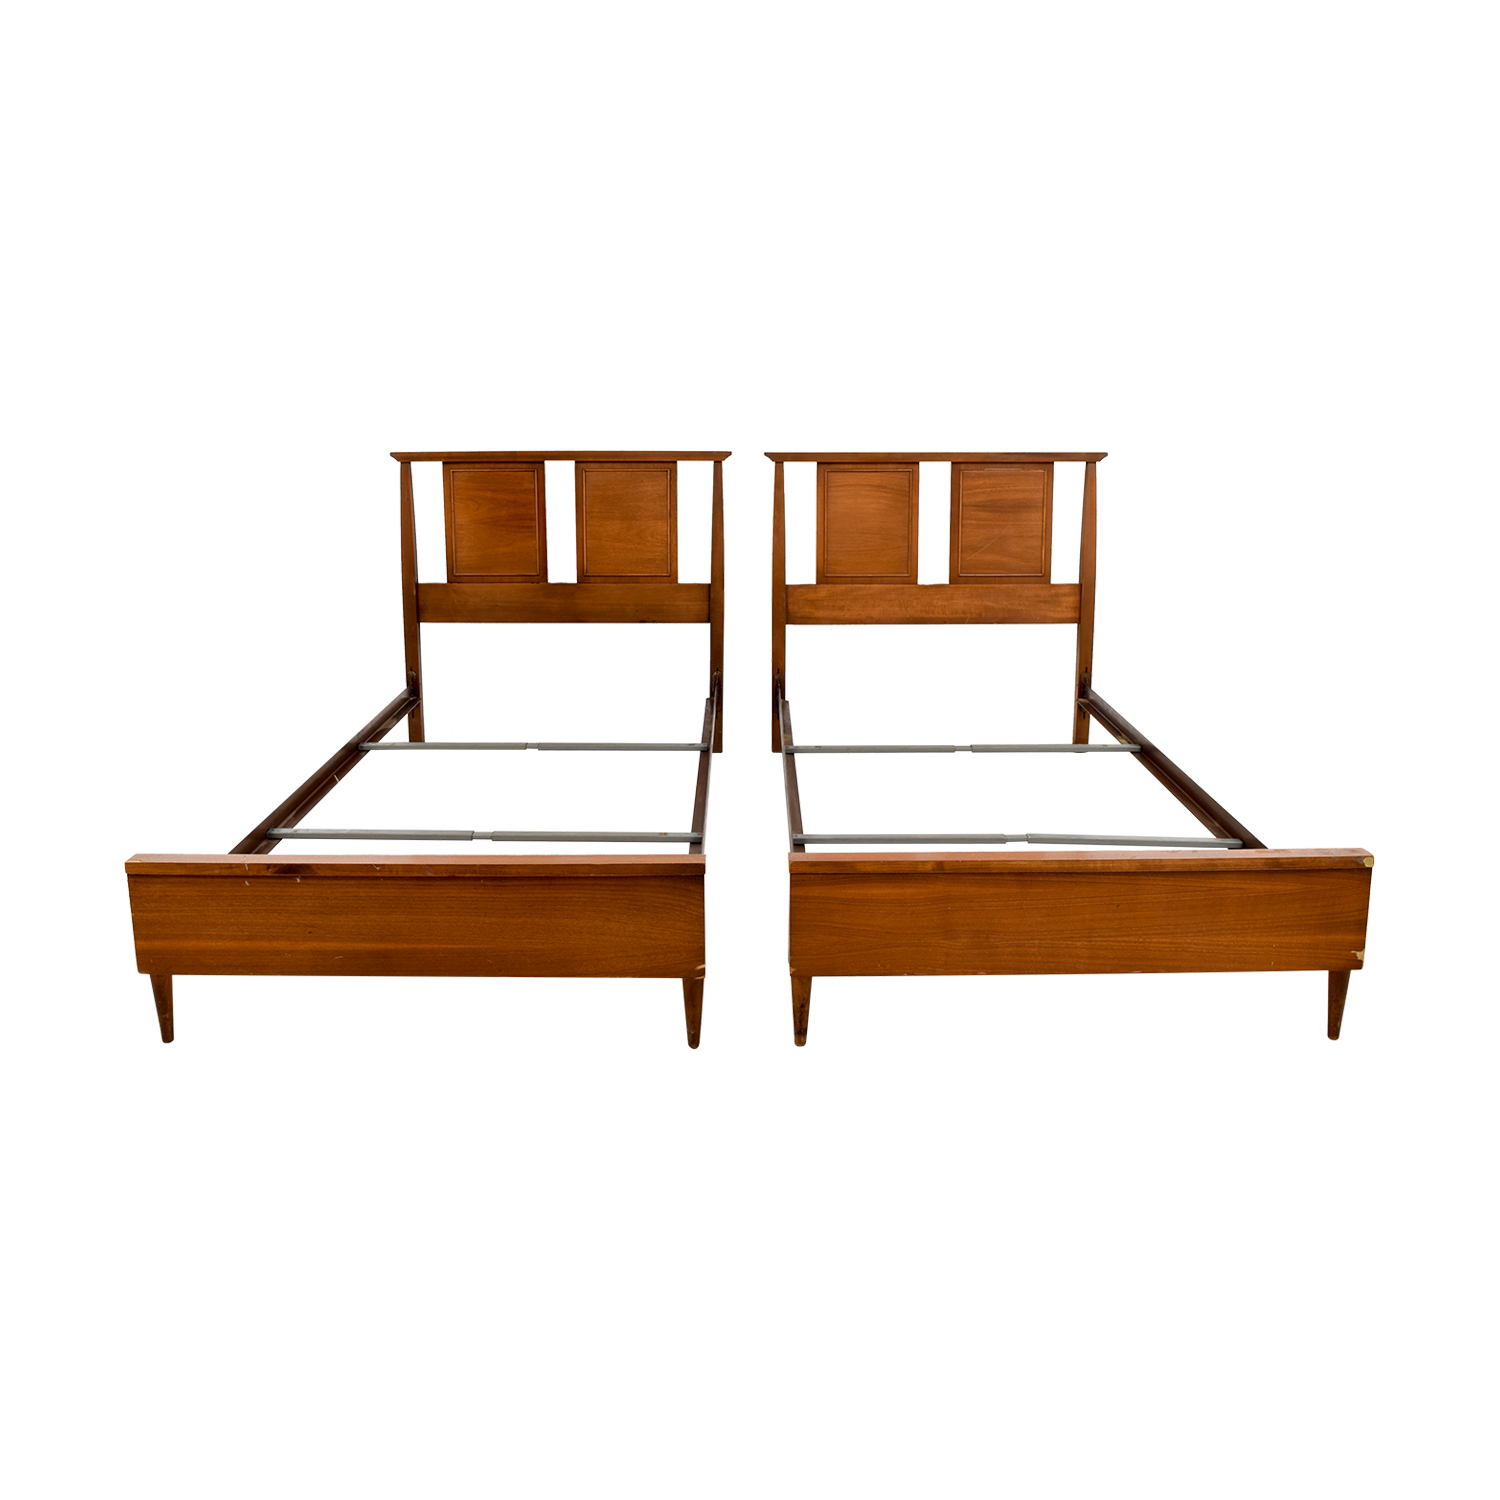 Seaman's Twin Bed Frames / Bed Frames